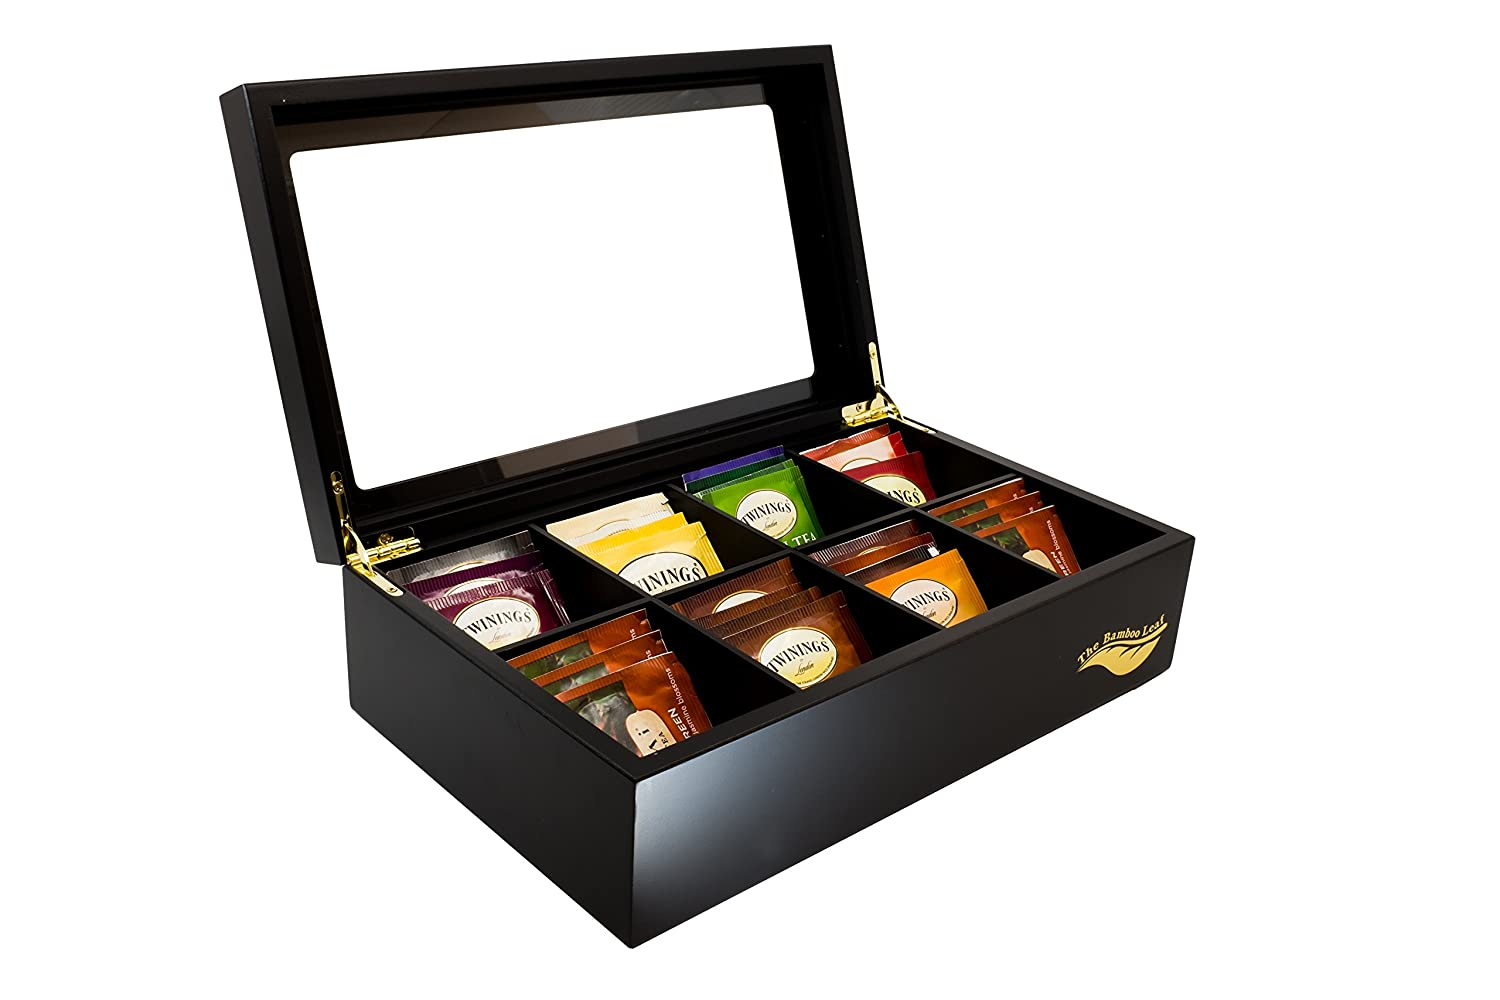 The Bamboo Leaf Luxury Wooden Tea Box Storage Chest, 8 Compartments w/Glass Window (Black) BL0108-B